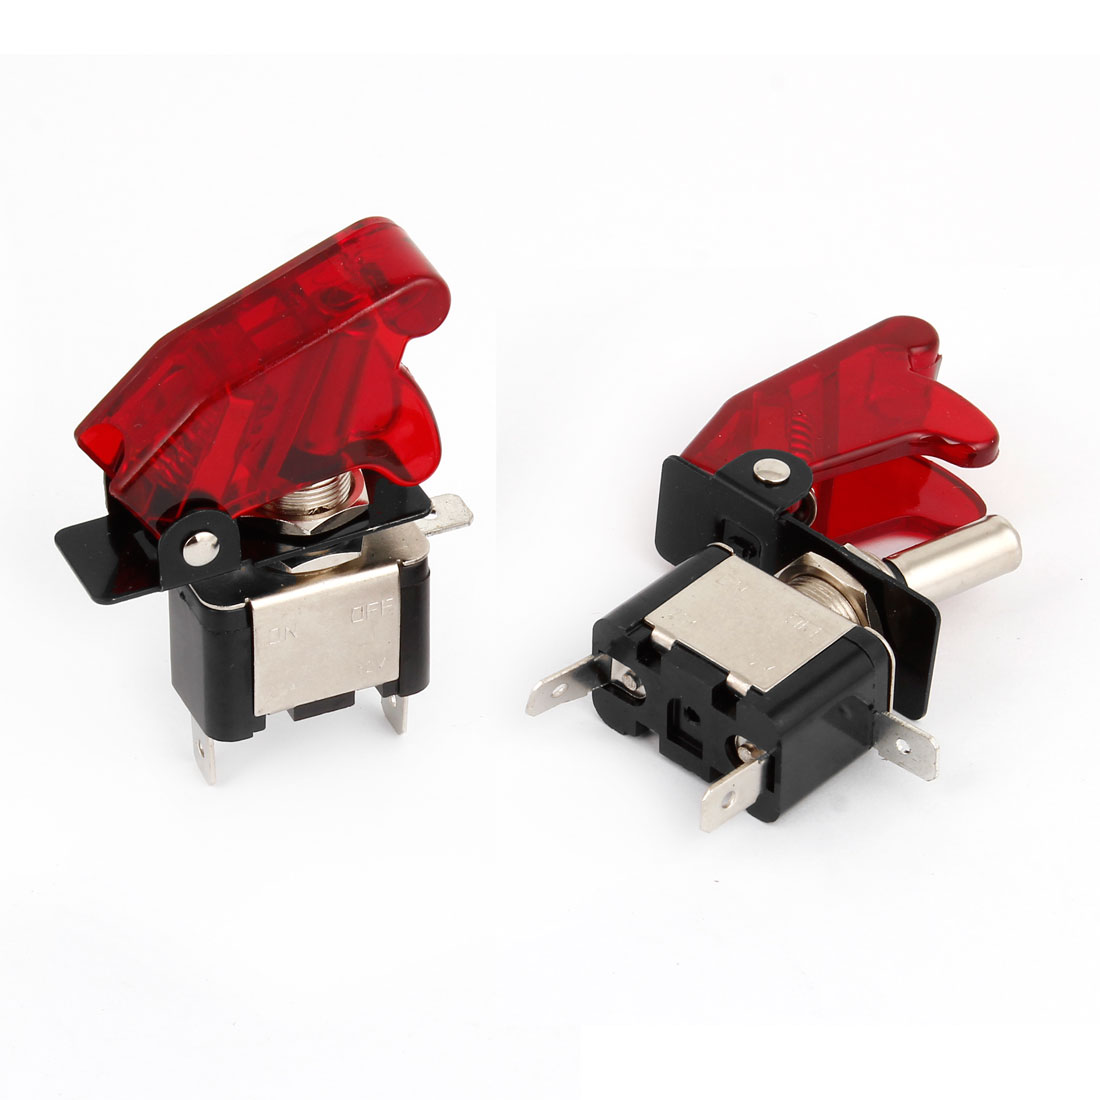 DC 12V 20A Red LED Illumination SPST ON/OFF Racing Car Toggle Switch 2 Pcs